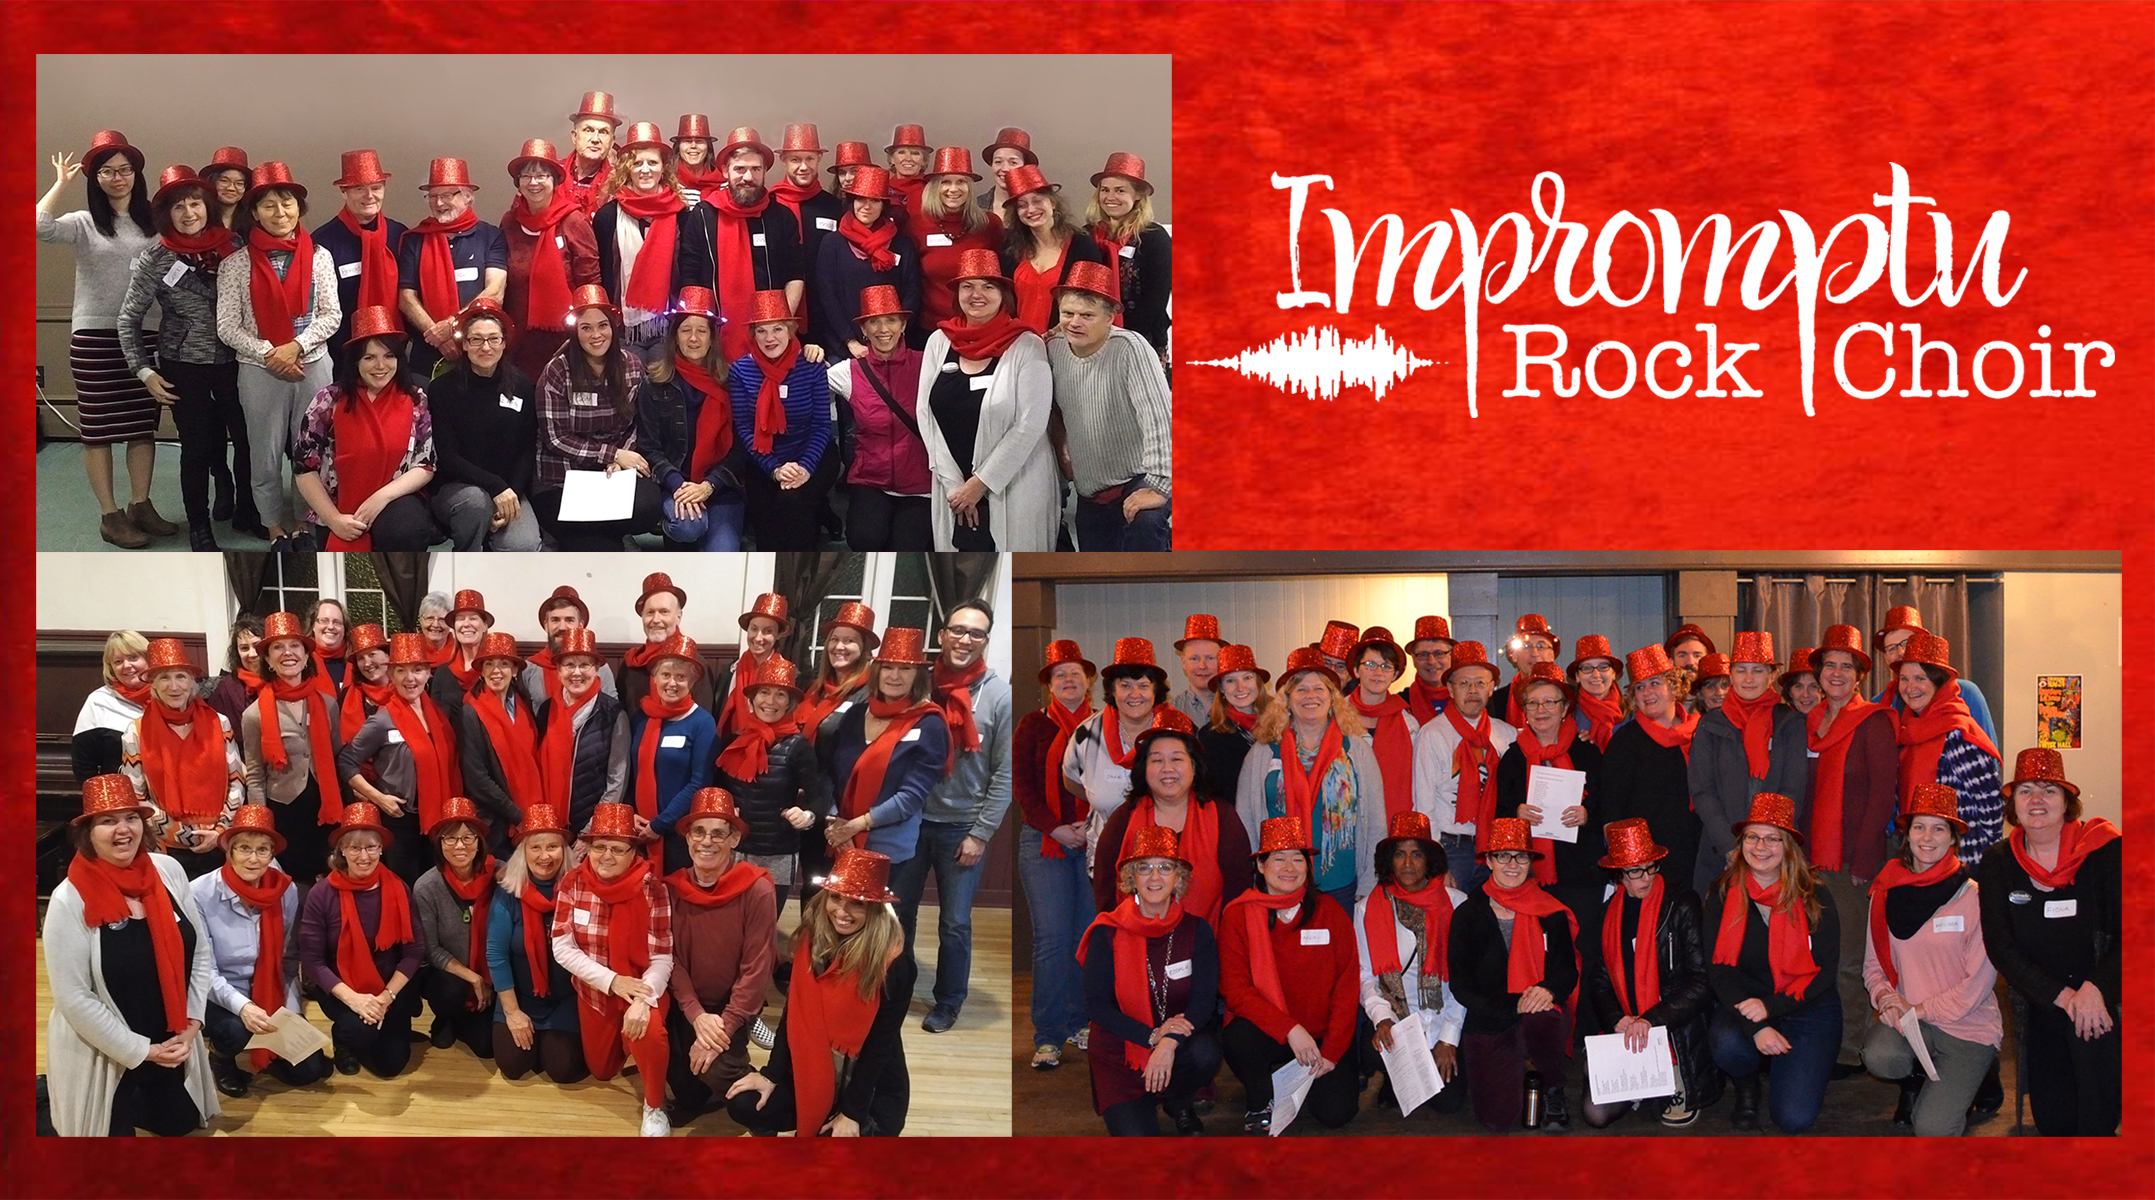 Yule Duel participants from our three choirs - Top left - Kitsilano! Bottom left - North Shore! Bottom right - East Van!